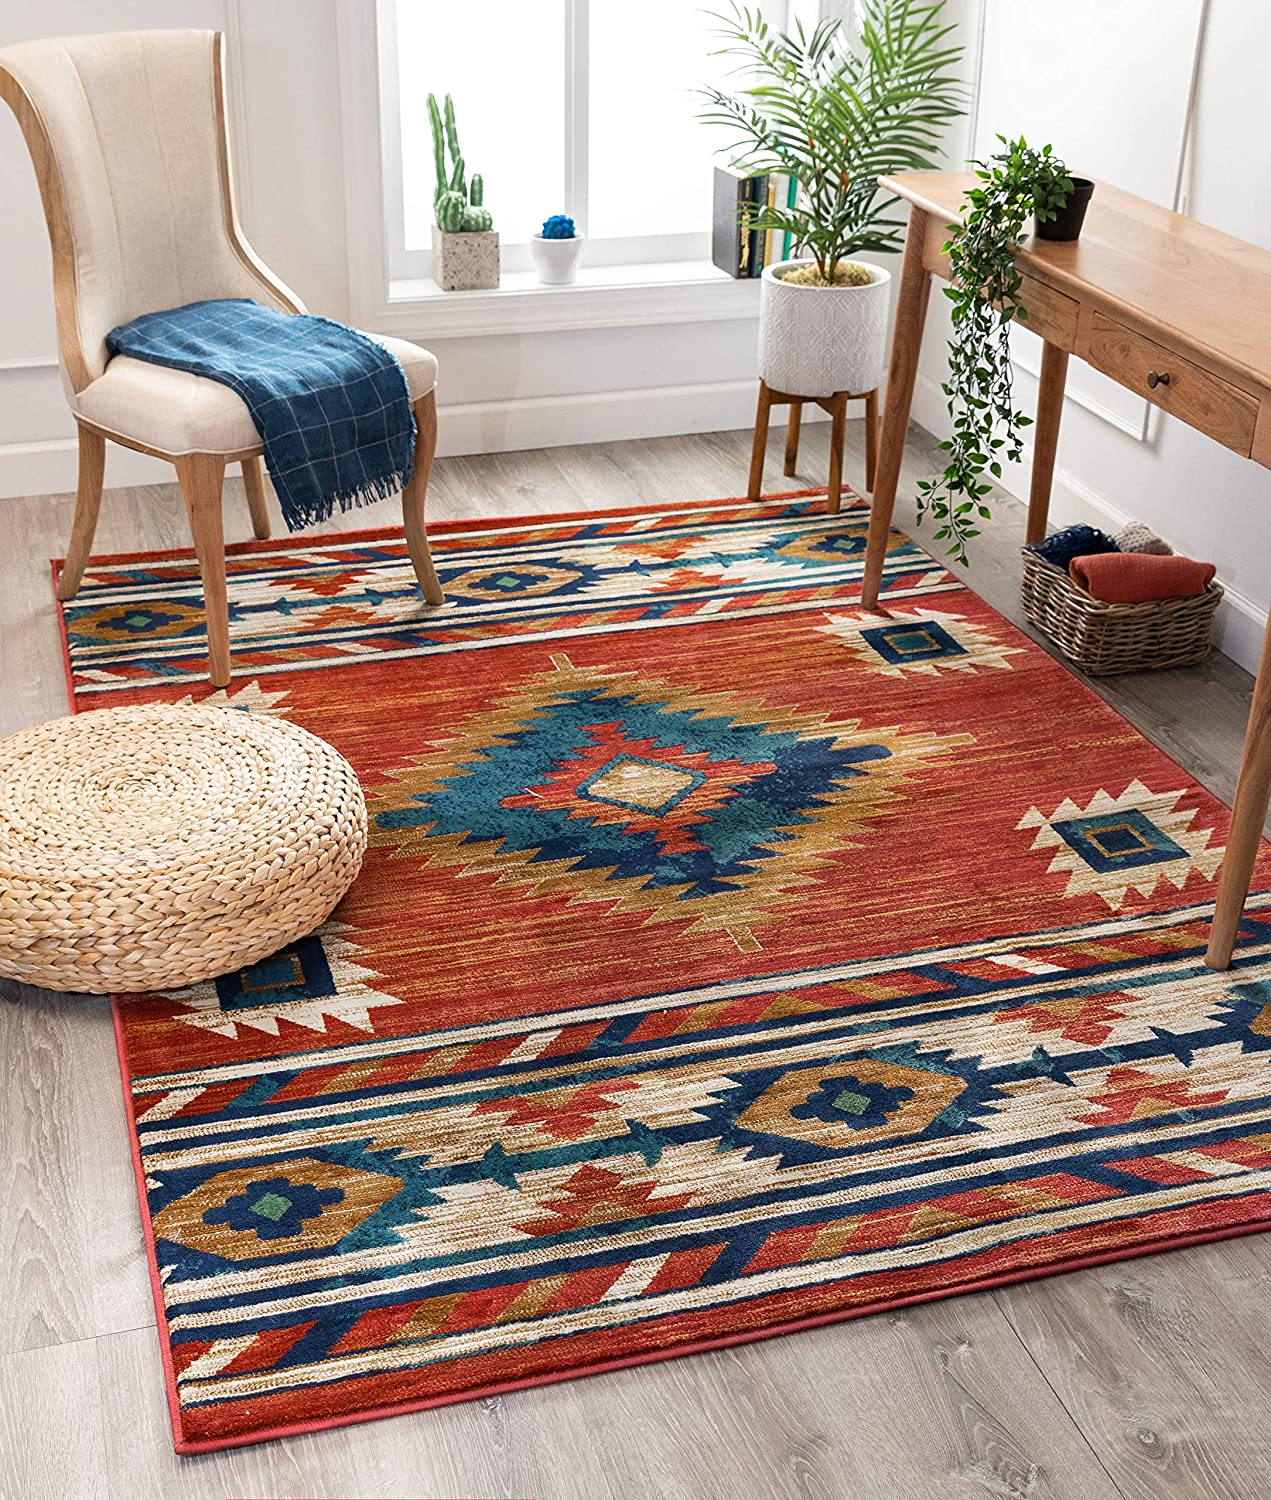 "Well Woven Lizette Red Traditional Medallion Area Rug 5x7 (5'3"" x 7'3"")"